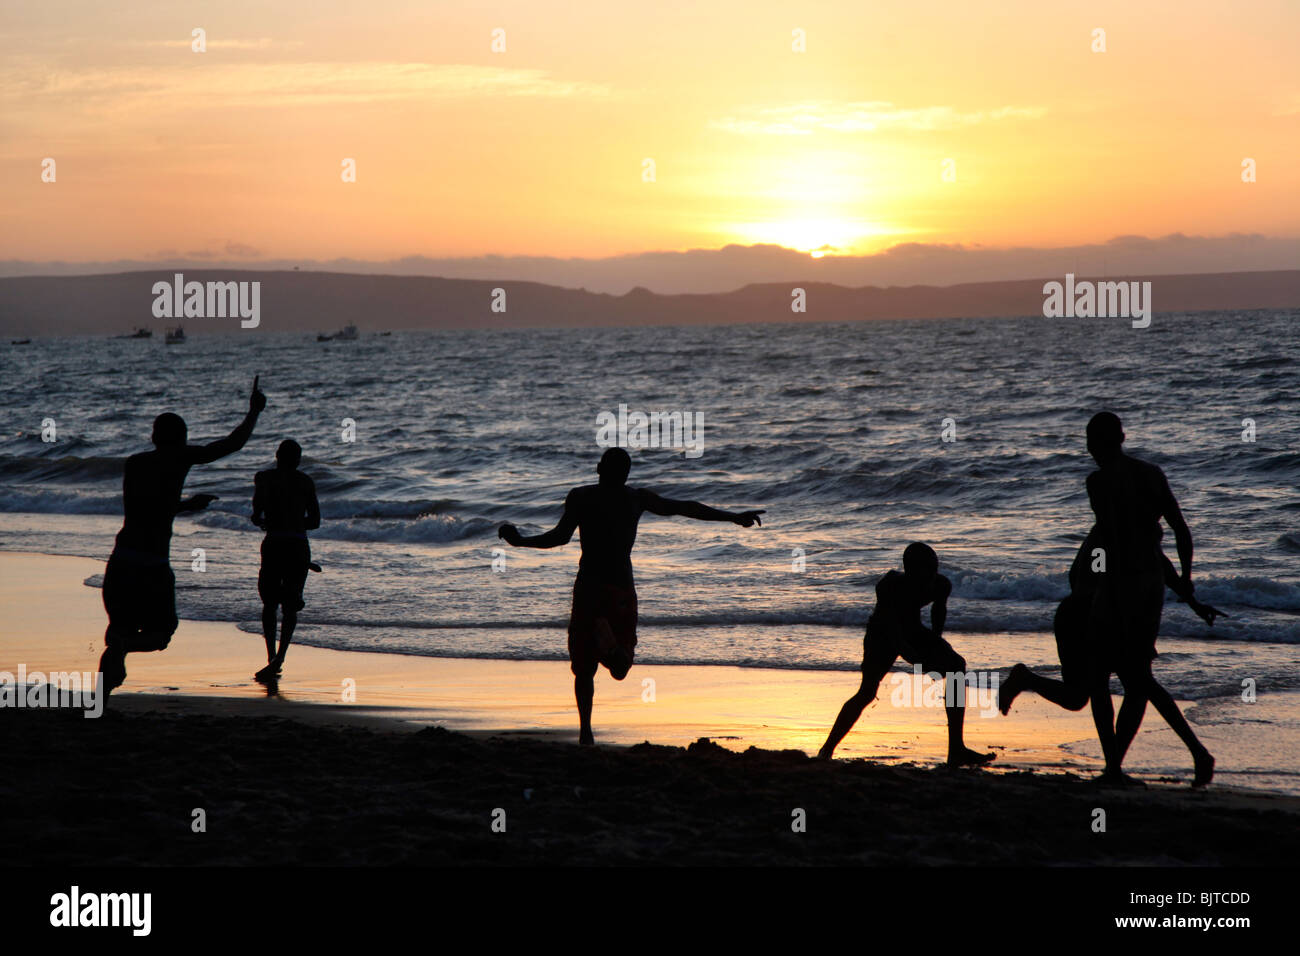 Friends playing football on the beach as the sun sets. Benguela city beach, Angola. Africa © Zute Lightfoot - Stock Image